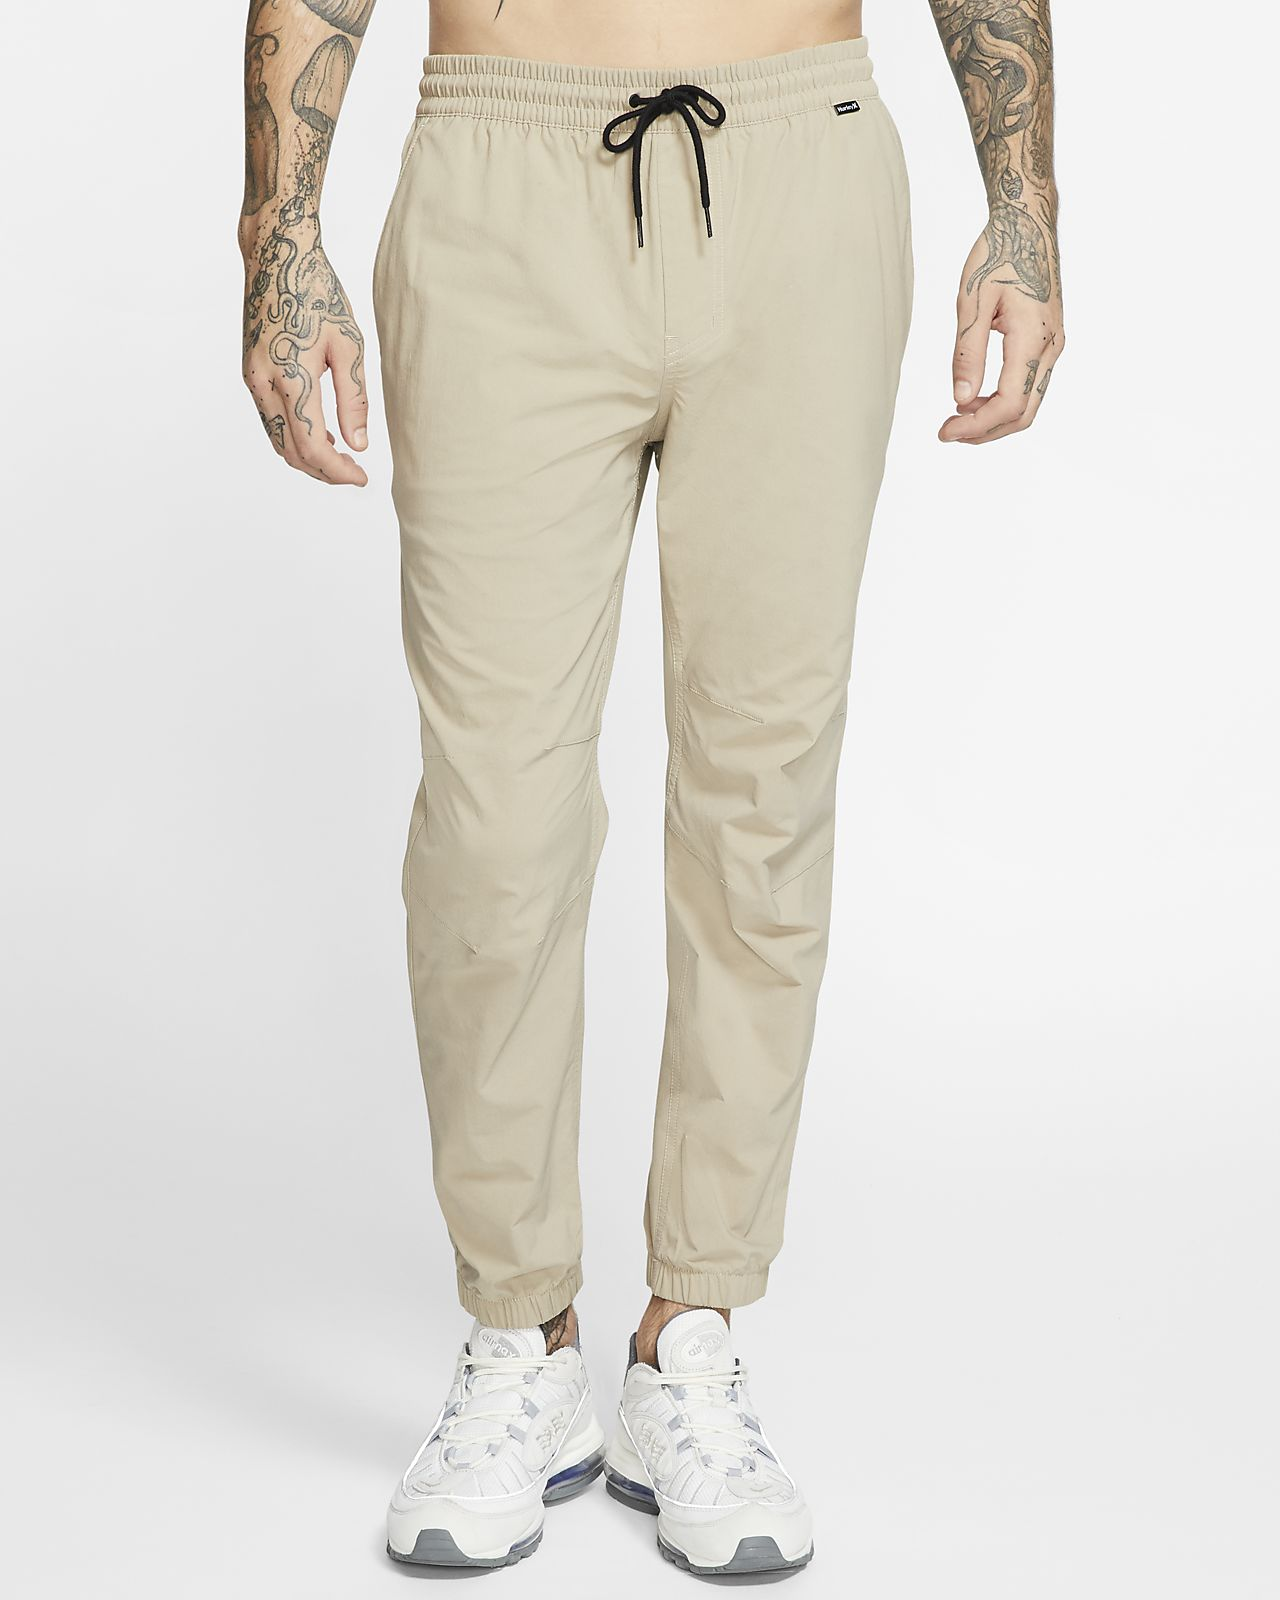 Hurley Dri-FIT Joggers - Home